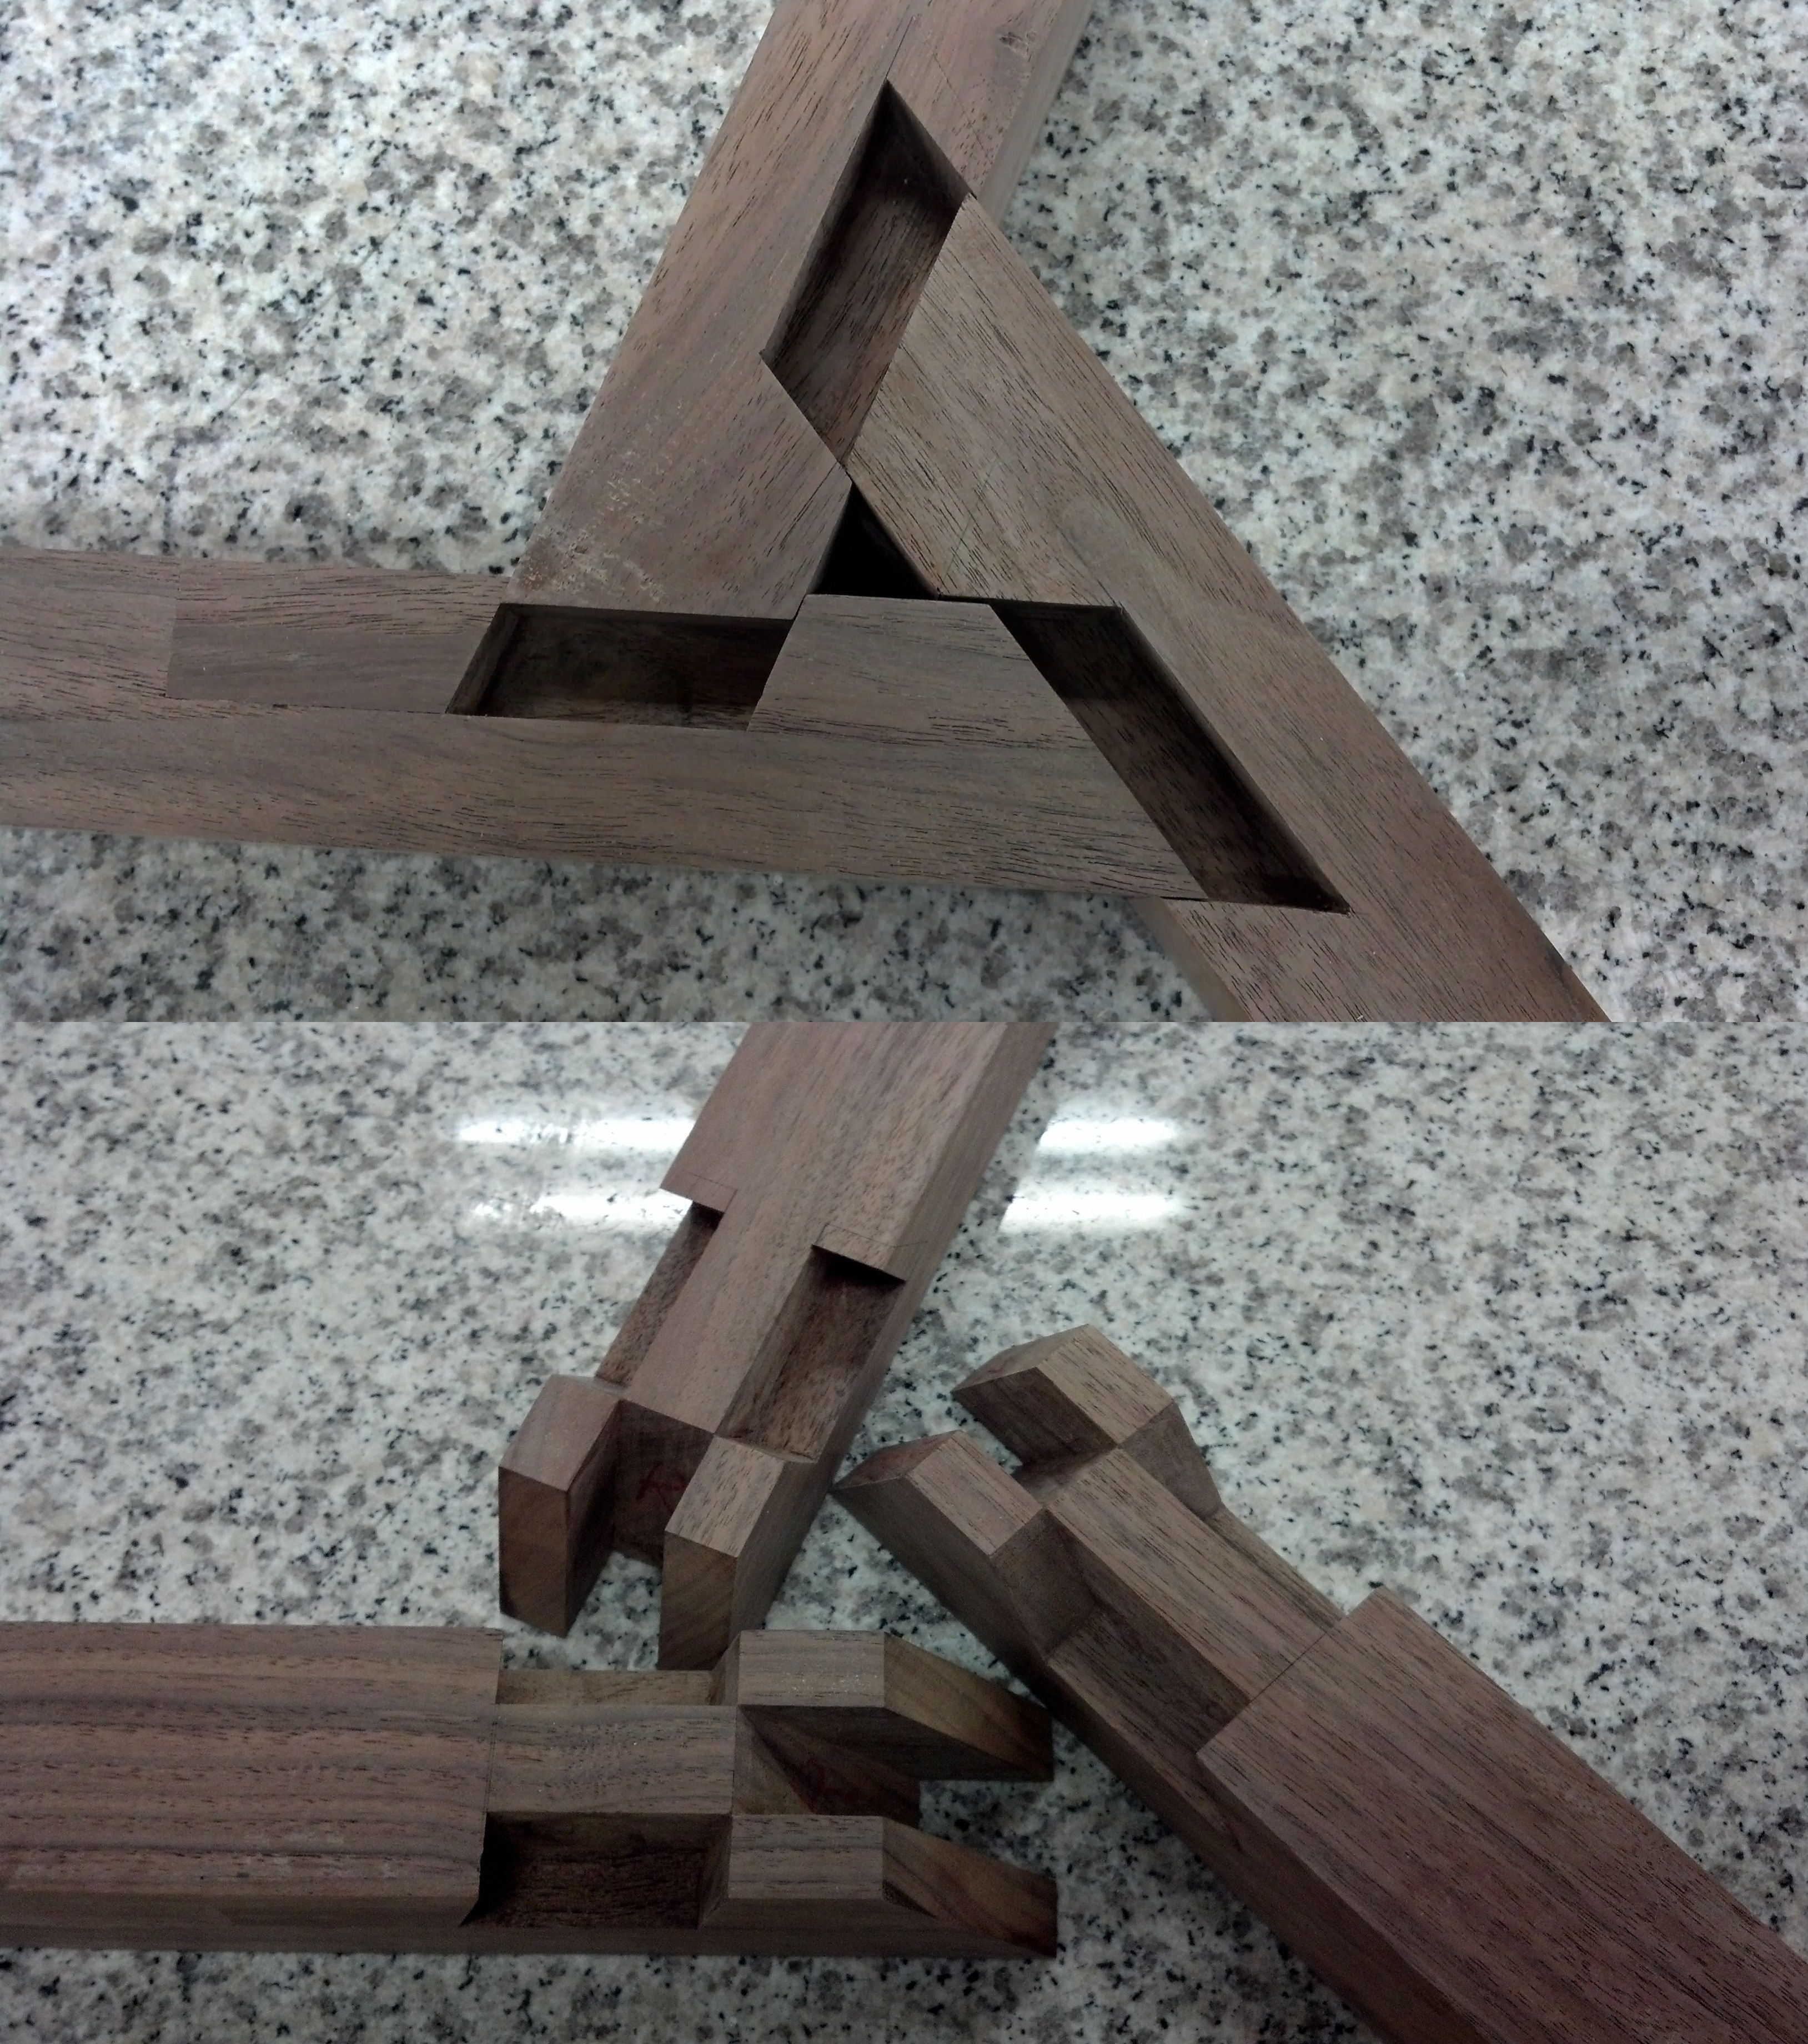 3-way wheel joint | WOOD | Pinterest | Wheels, Joinery and Woodworking